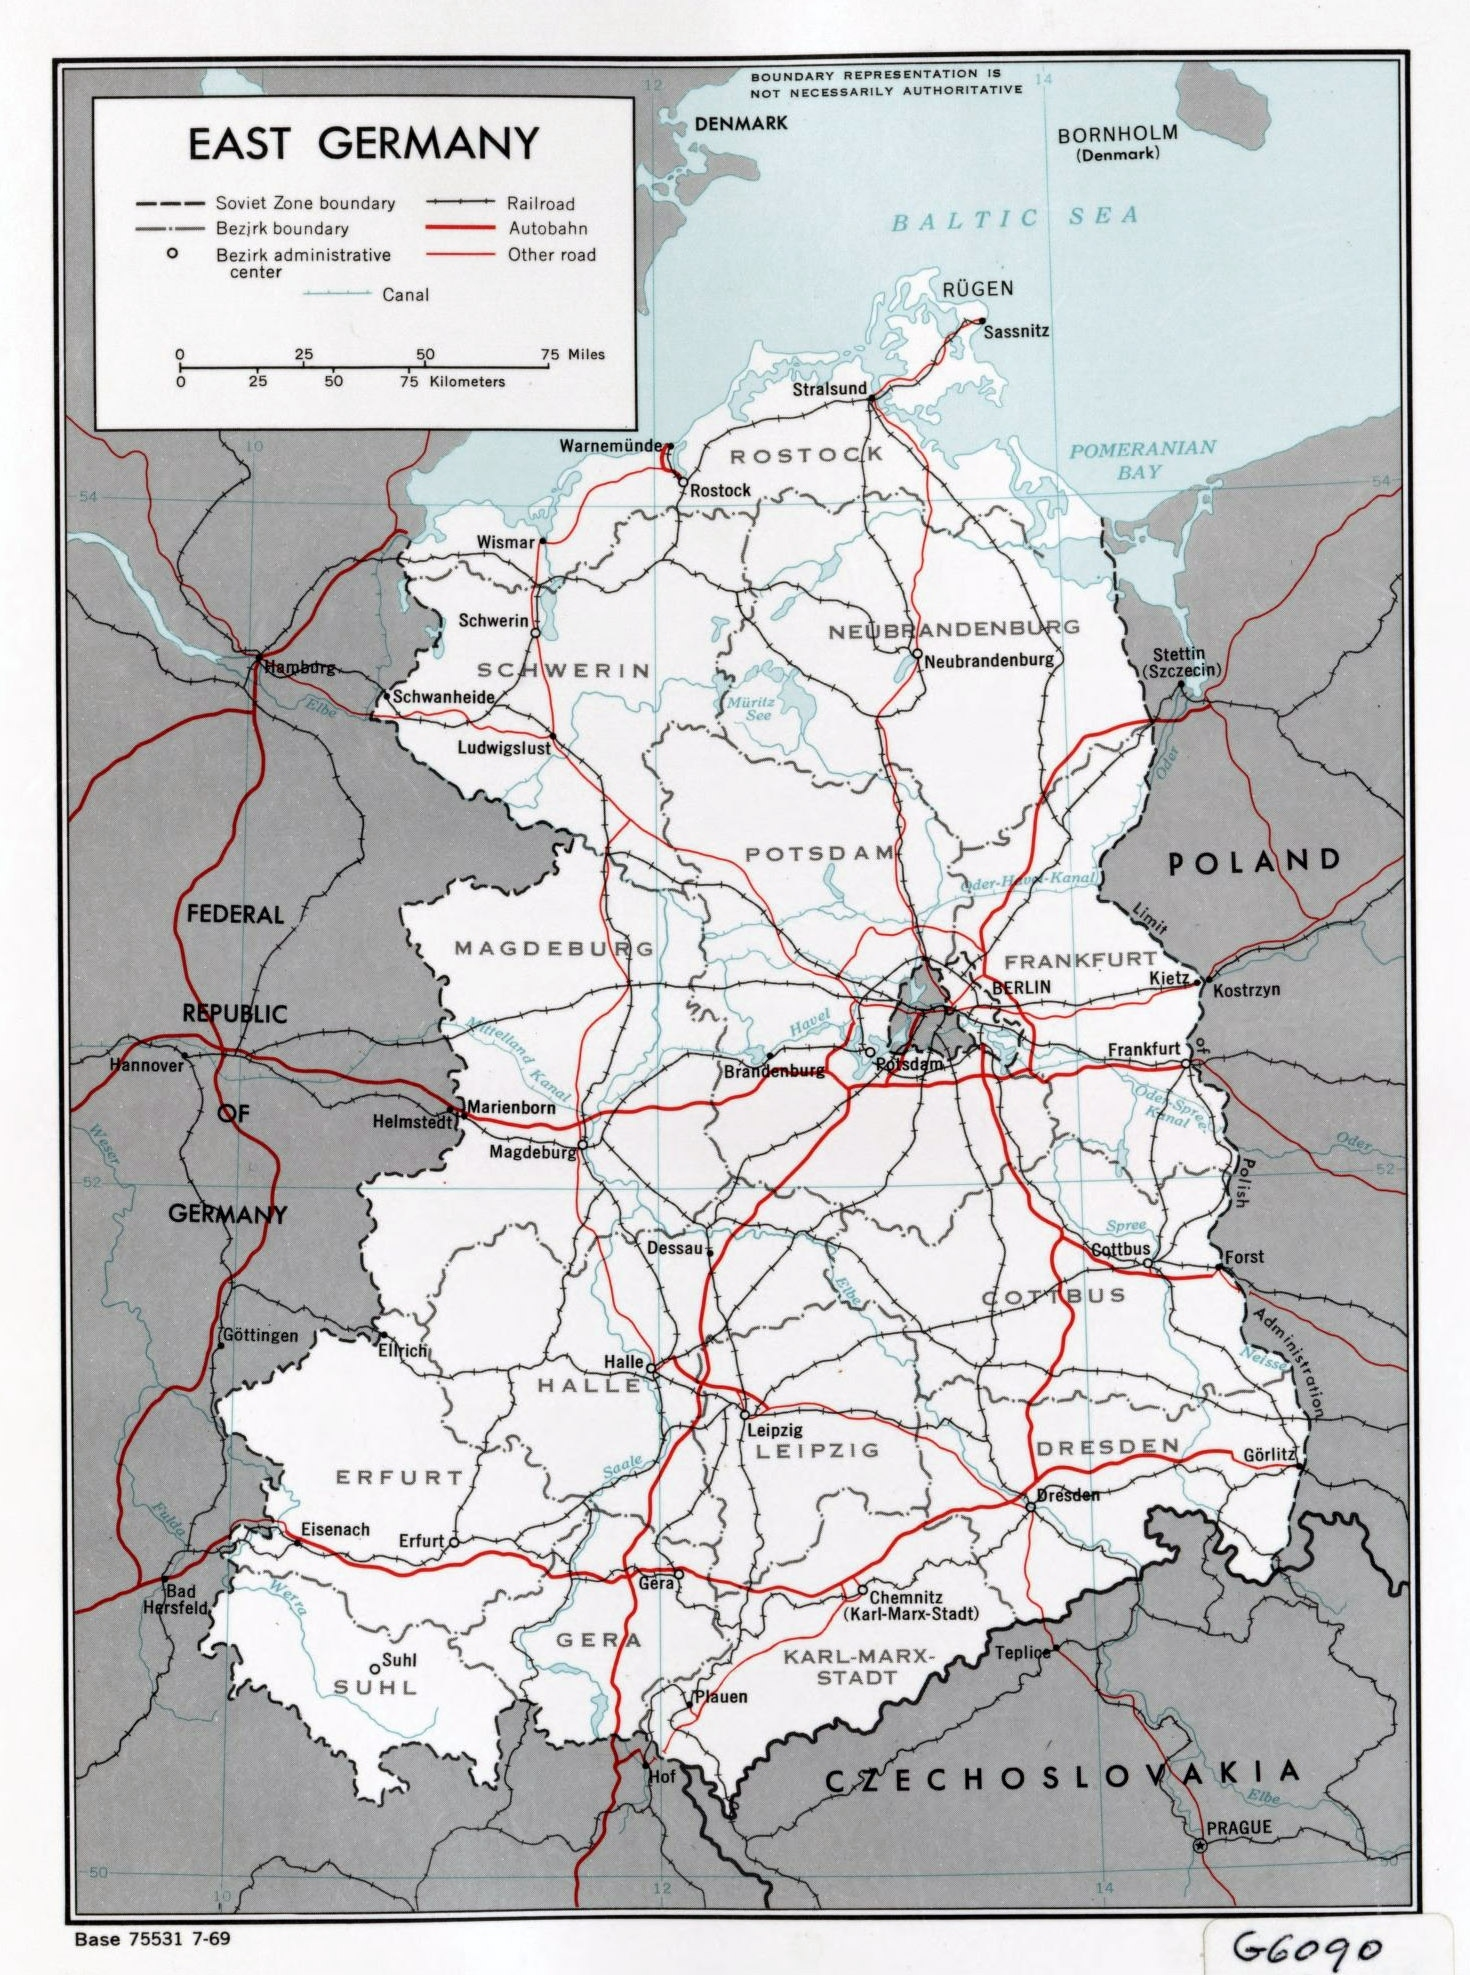 Large Political And Administrative Map Of East Germany With Roads with regard to East Germany Map Cities